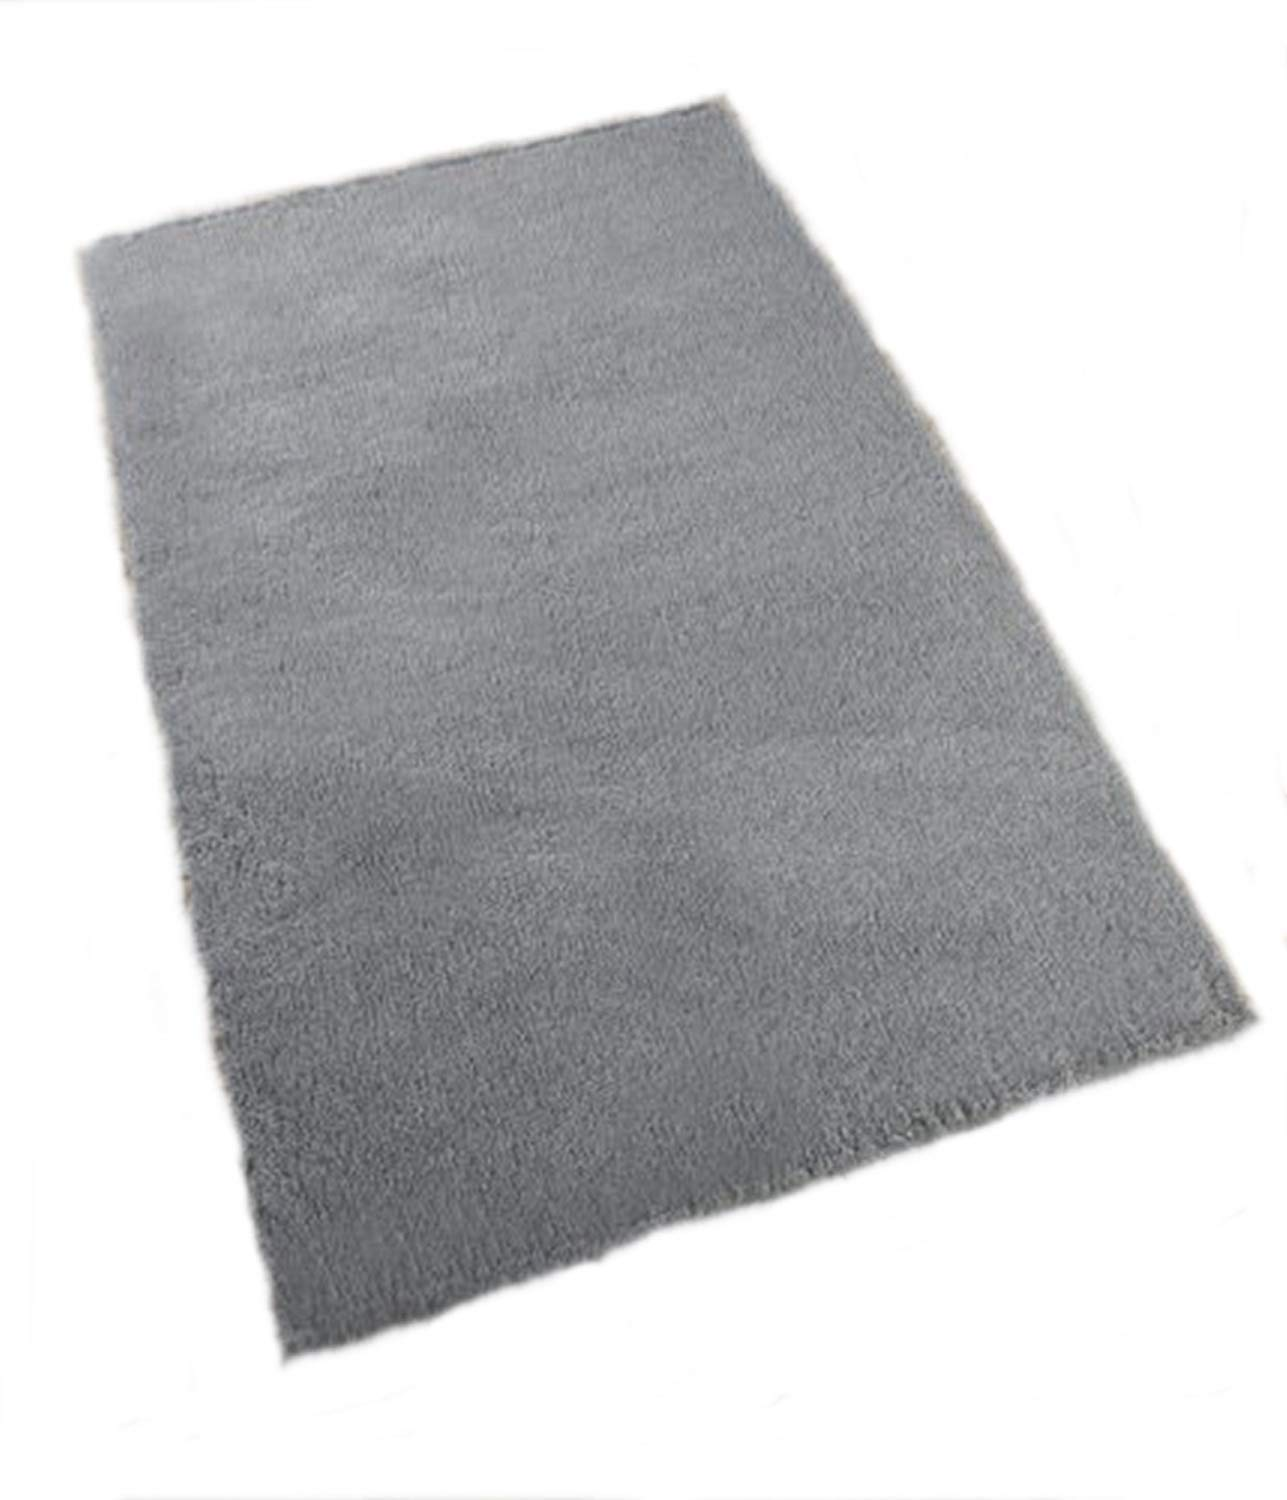 GREY 200cm x 150cm GREY 200cm x 150cm PnH® Veterinary Bedding Green Back GREY, BROWN, CHARCOAL or WHITE Vet Bedding Pieces Many Sizes READY TO USE, SELVAGE EDGE REMOVED (200cm x 150cm, GREY)